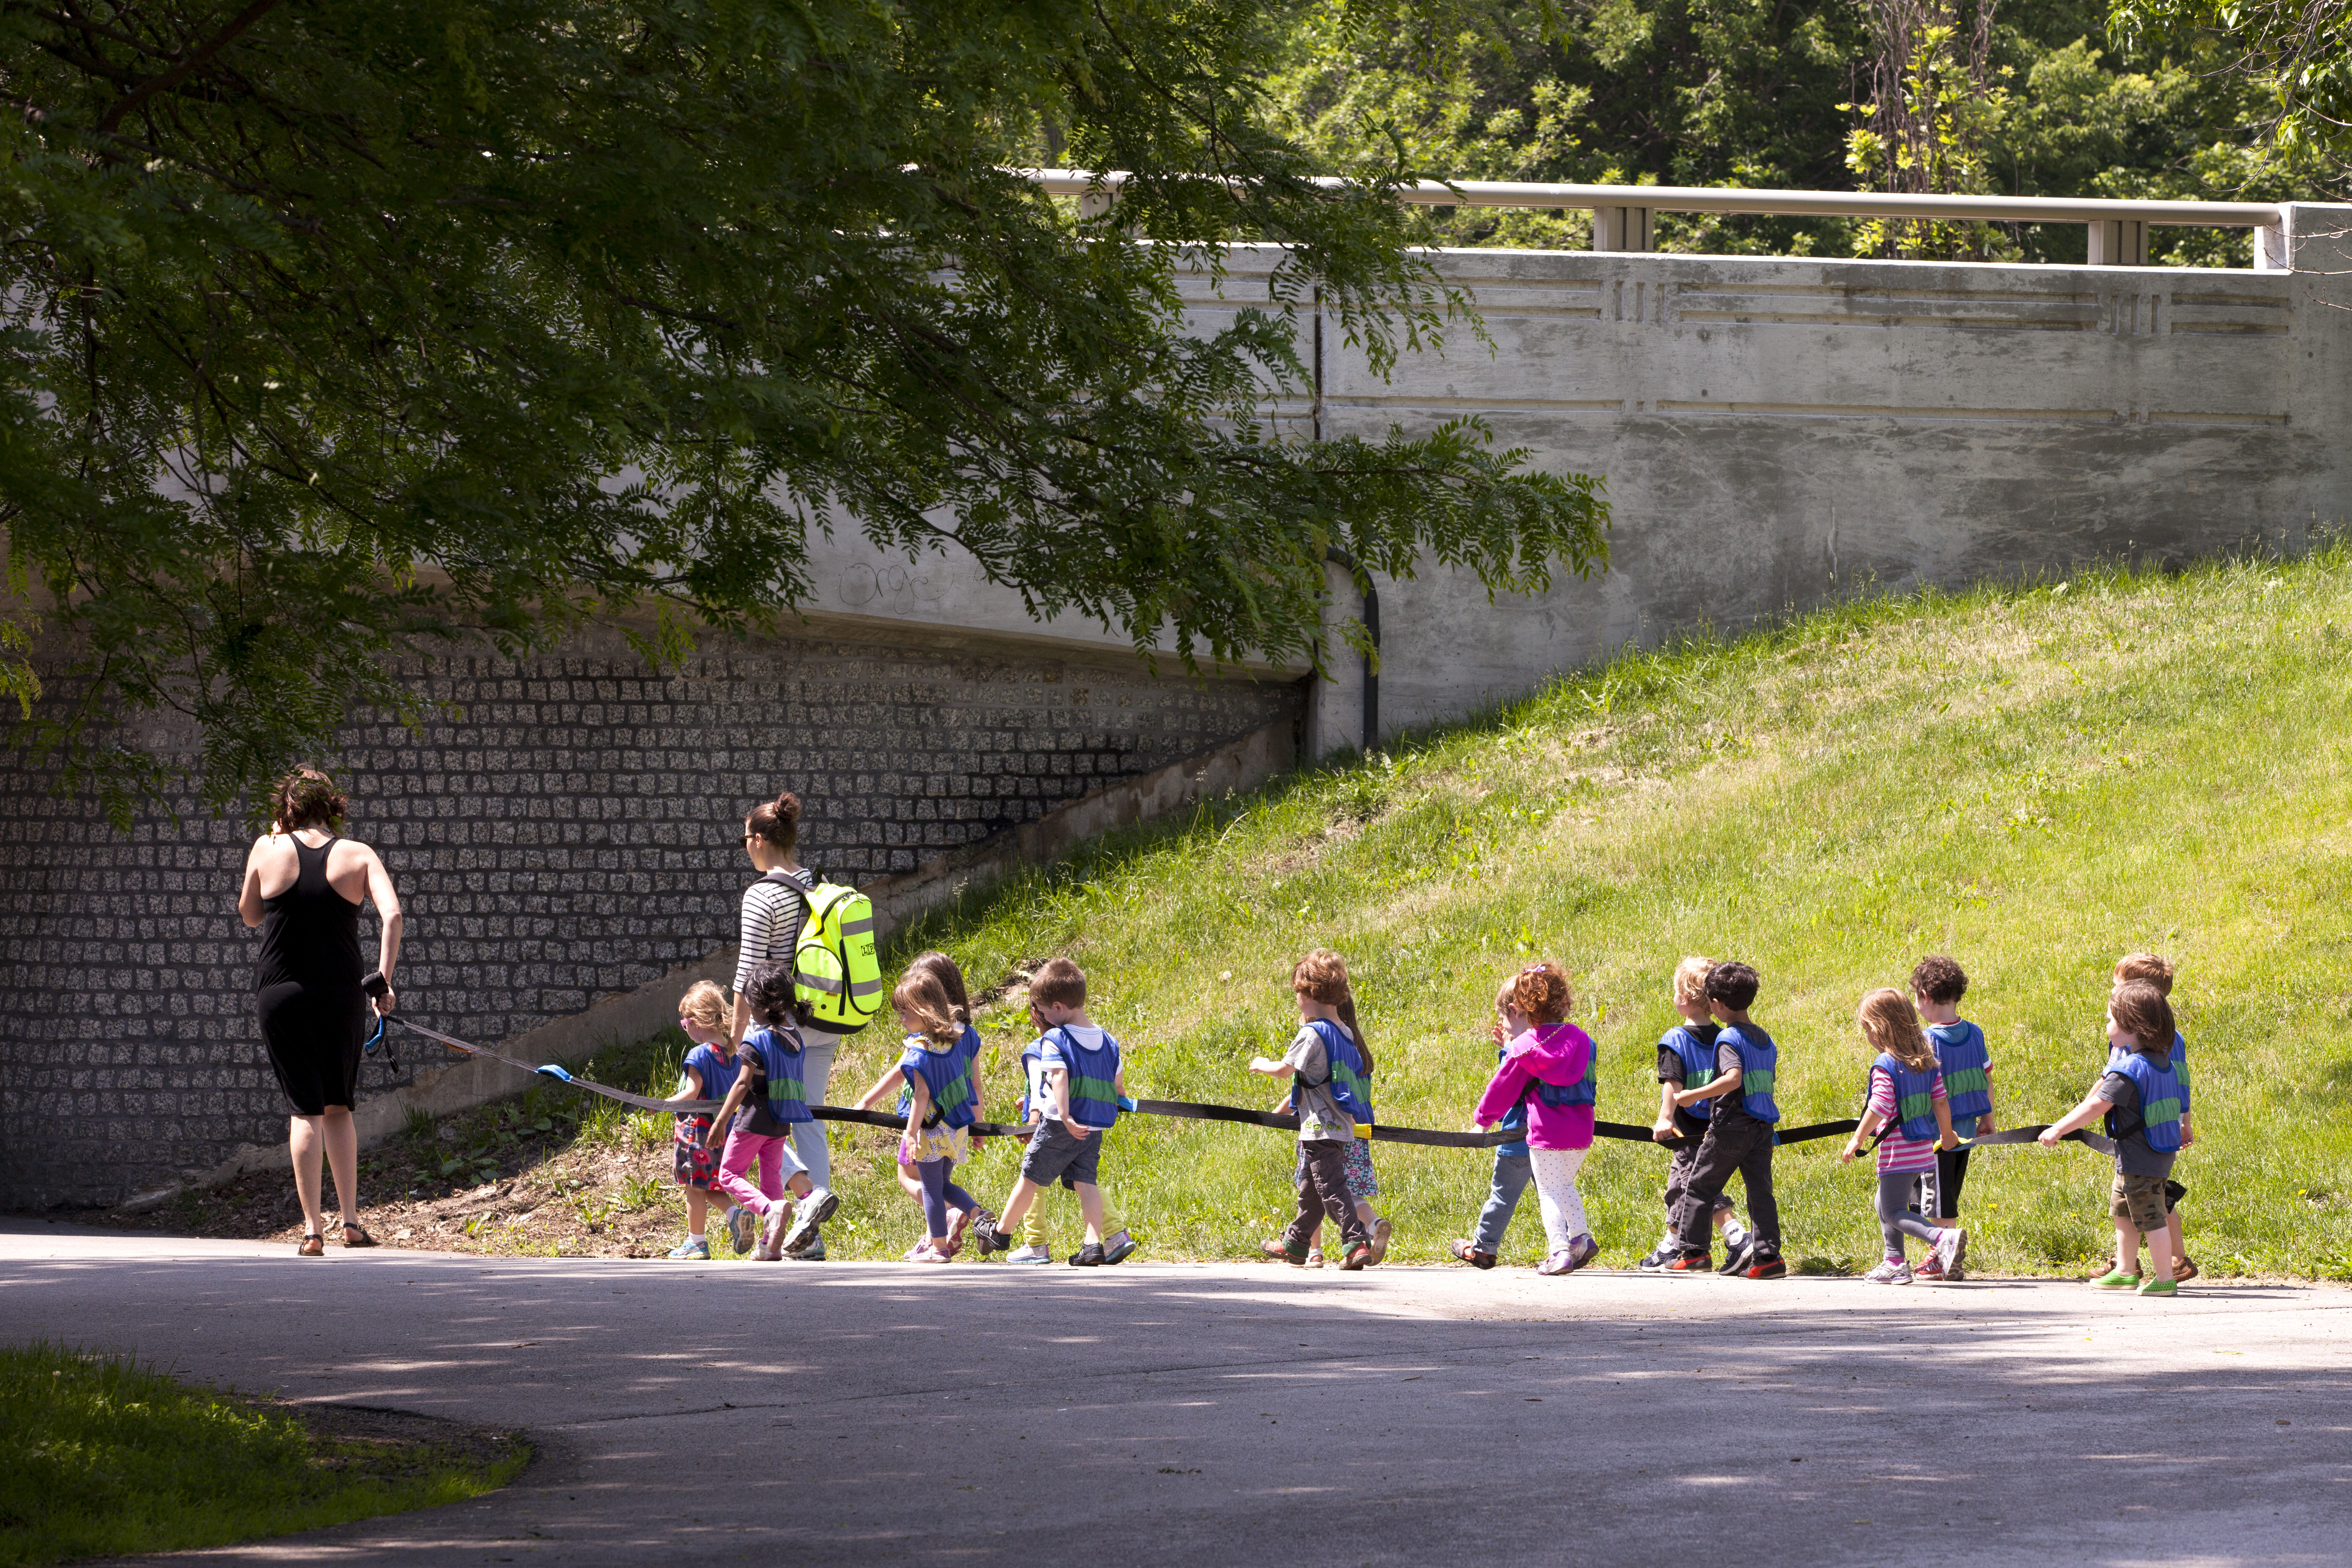 Daycare children on a long leash and their caretakers enjoy a walk through a Chicago park